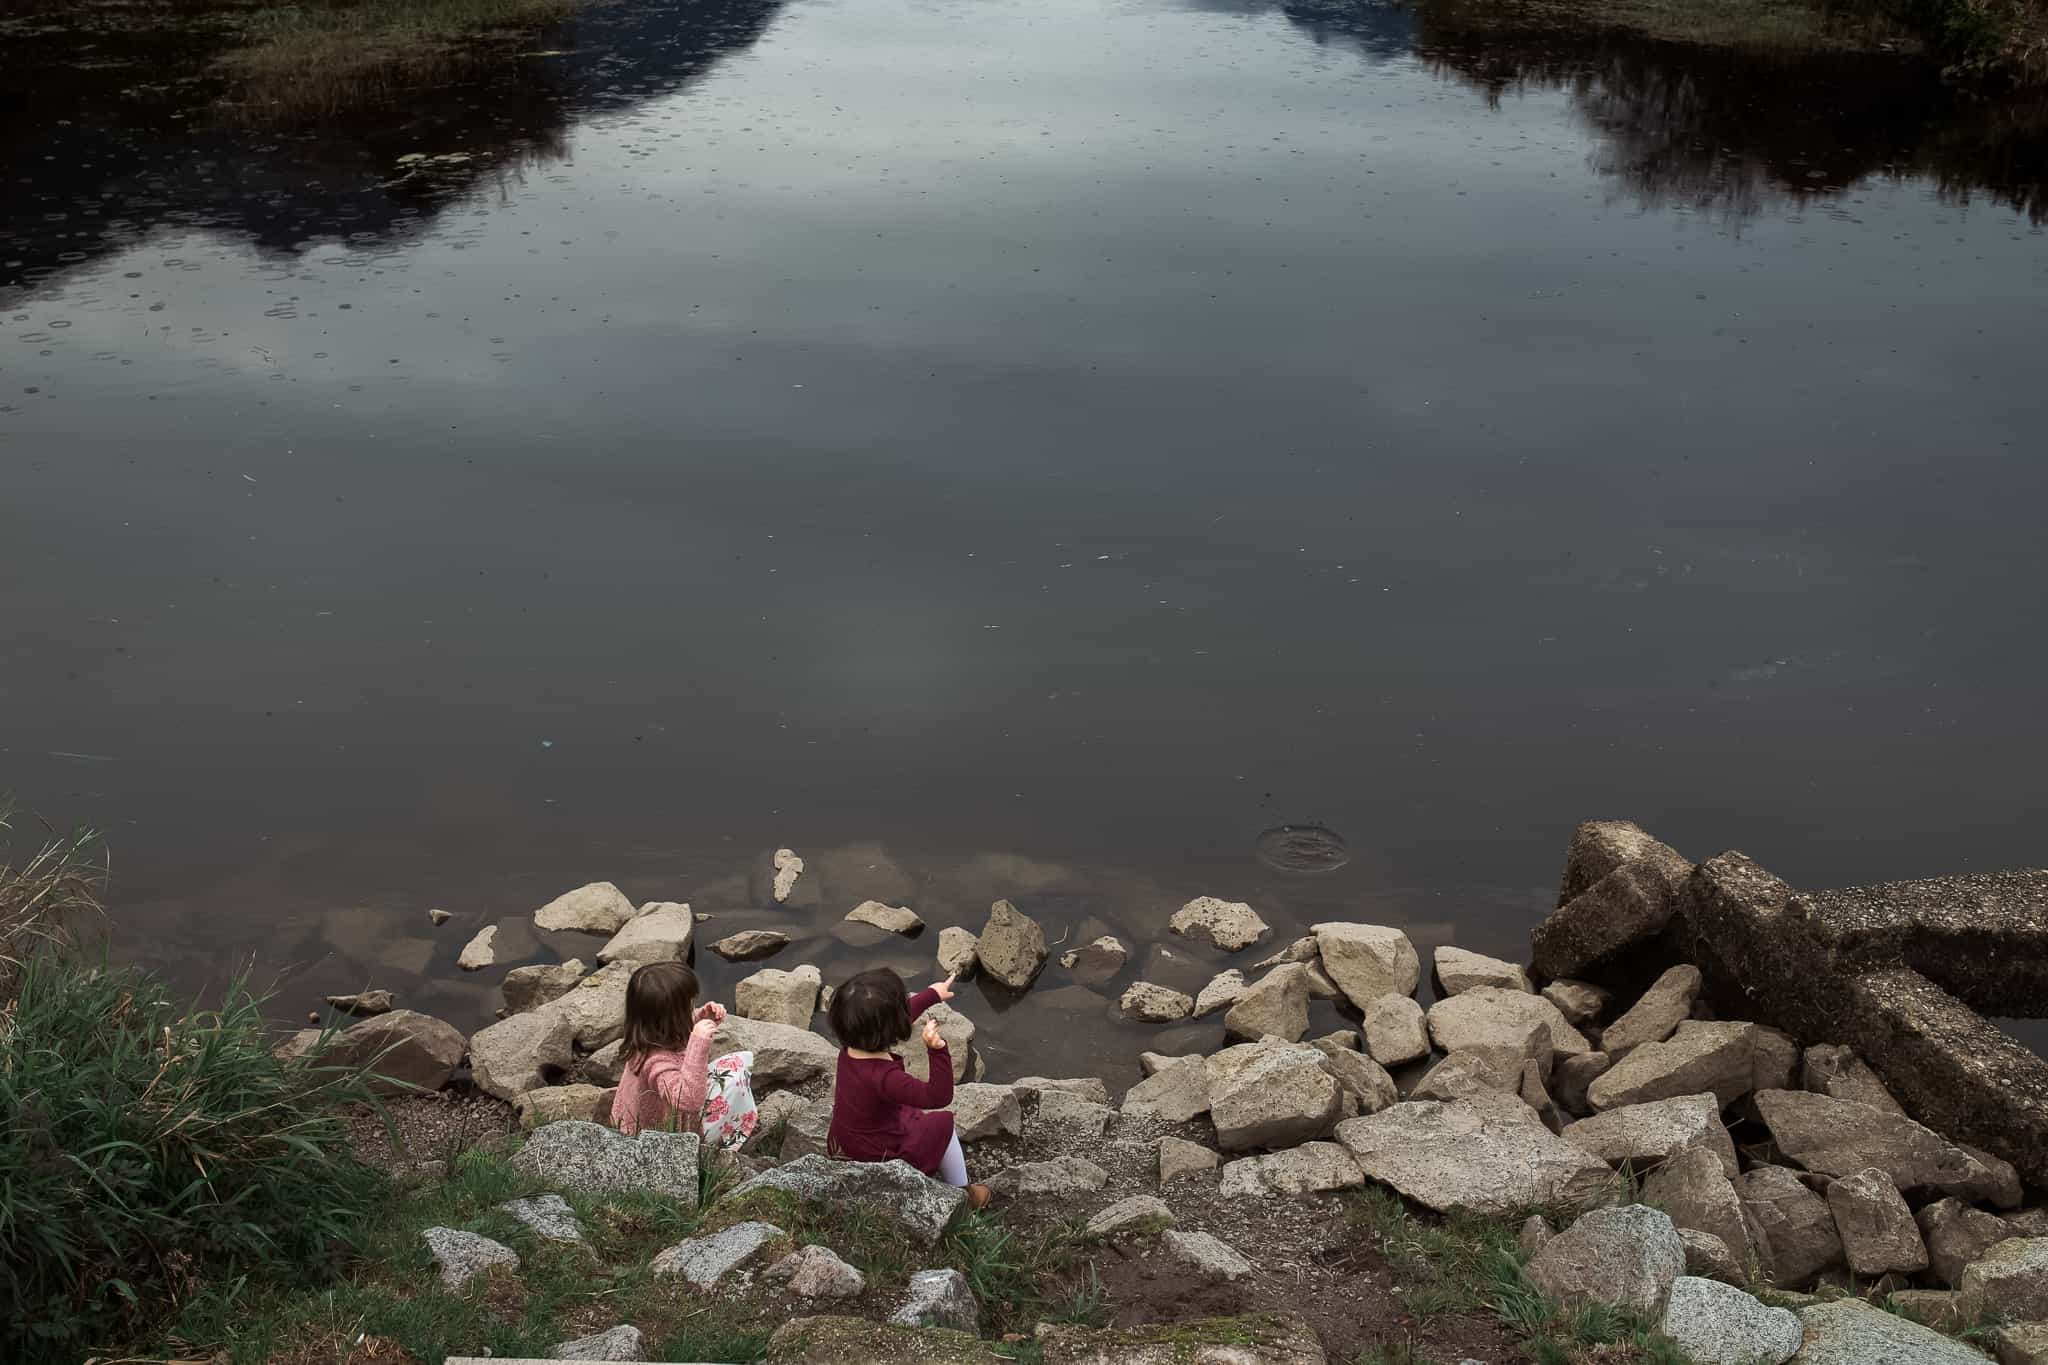 two girls throwing rocks into a still pond